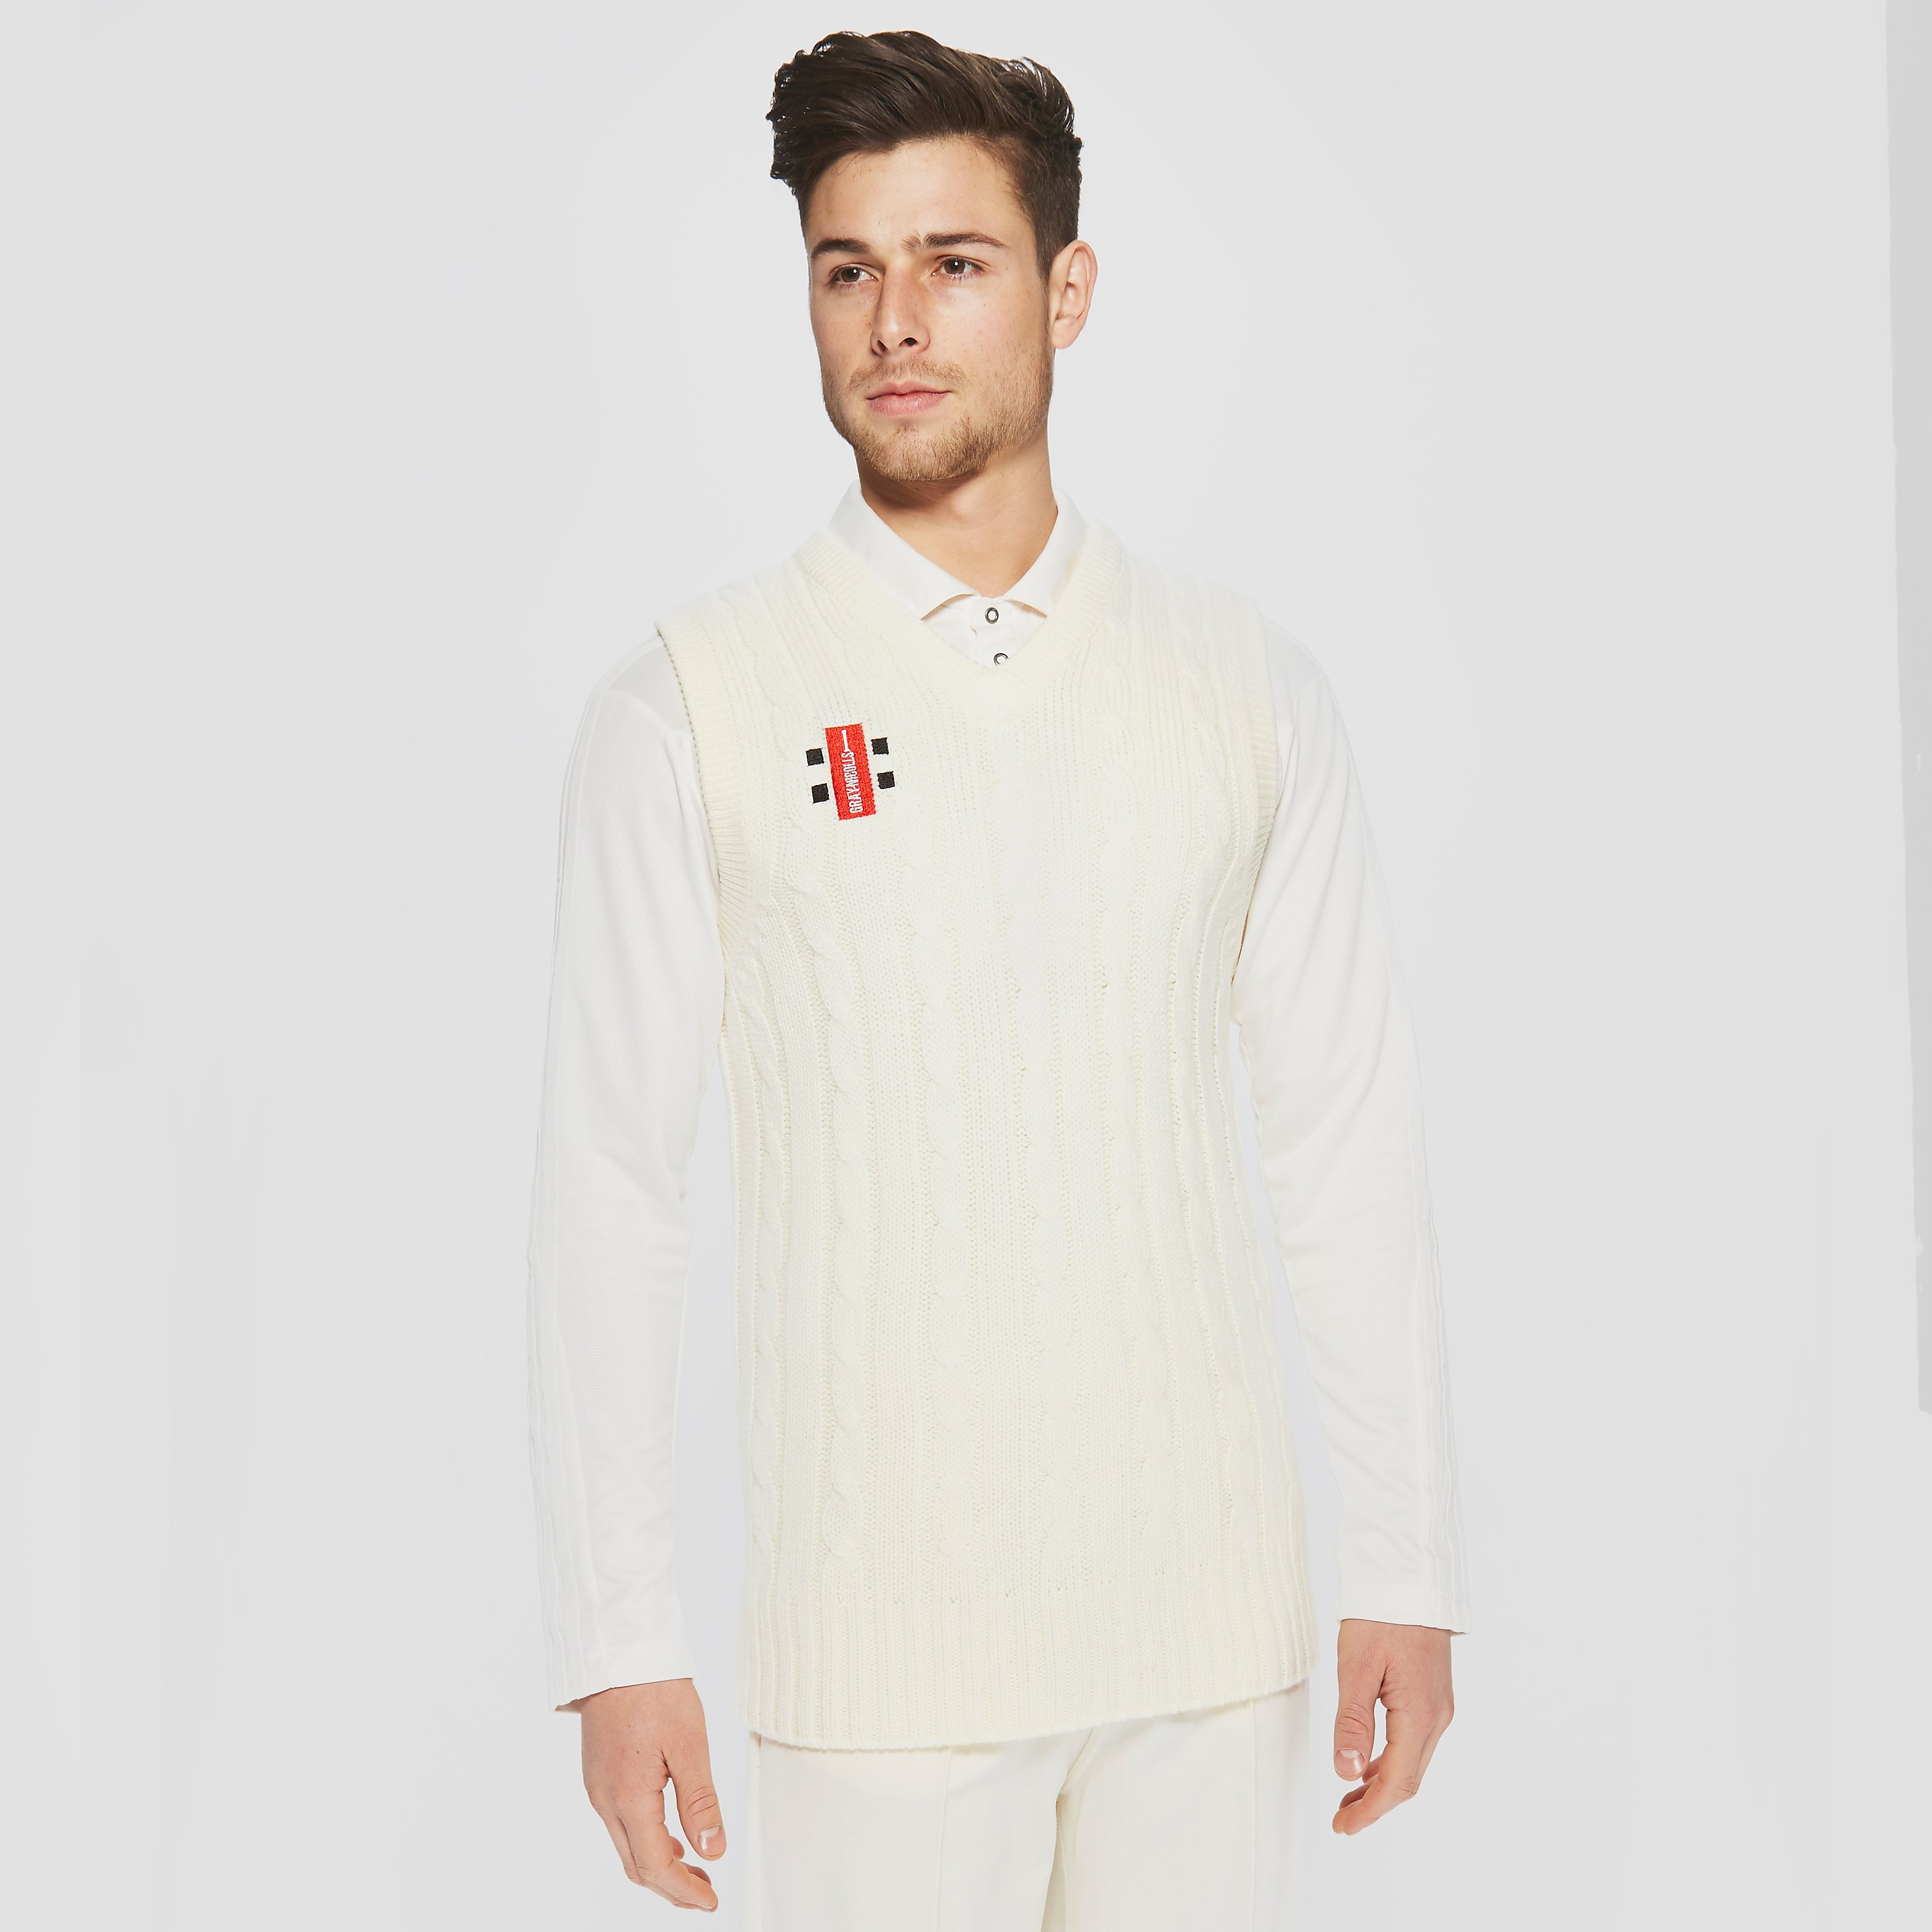 Gray Nicolls Acrylic Men's Slipover